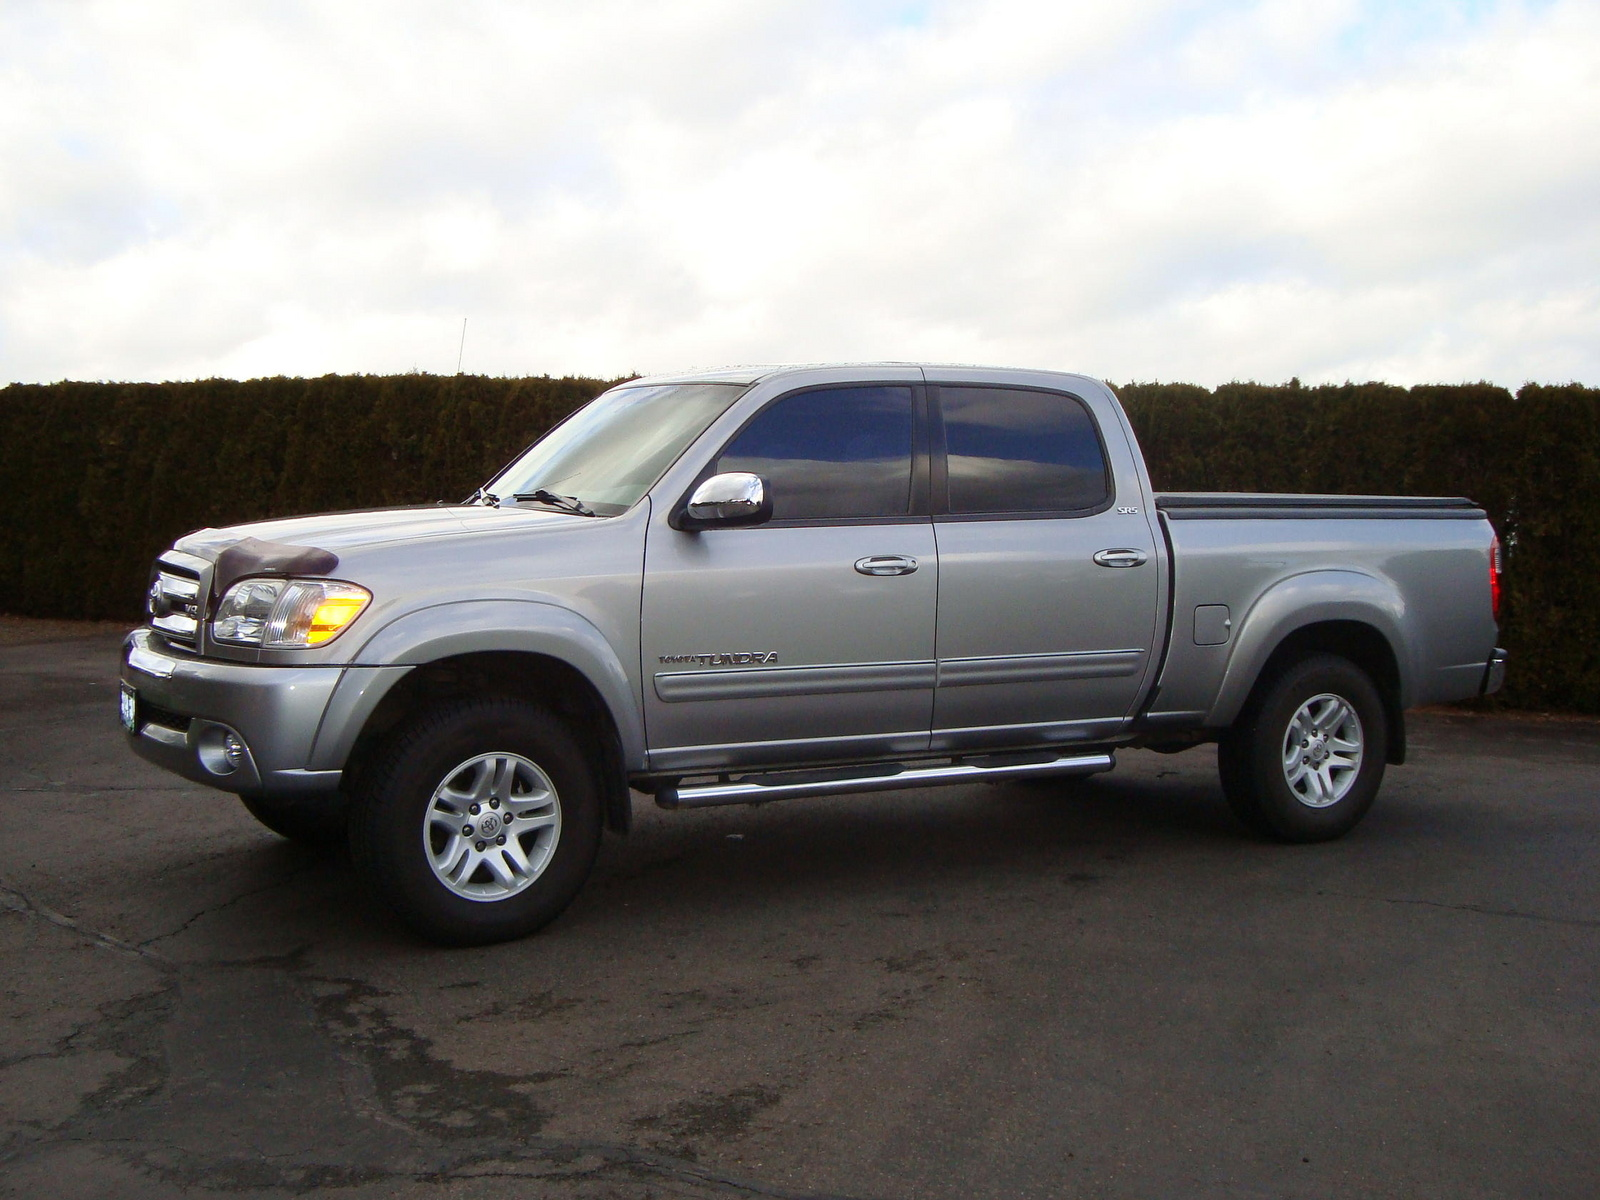 of 2005 toyota tundra 4 dr limited v8 4wd crew cab sb exterior. Black Bedroom Furniture Sets. Home Design Ideas